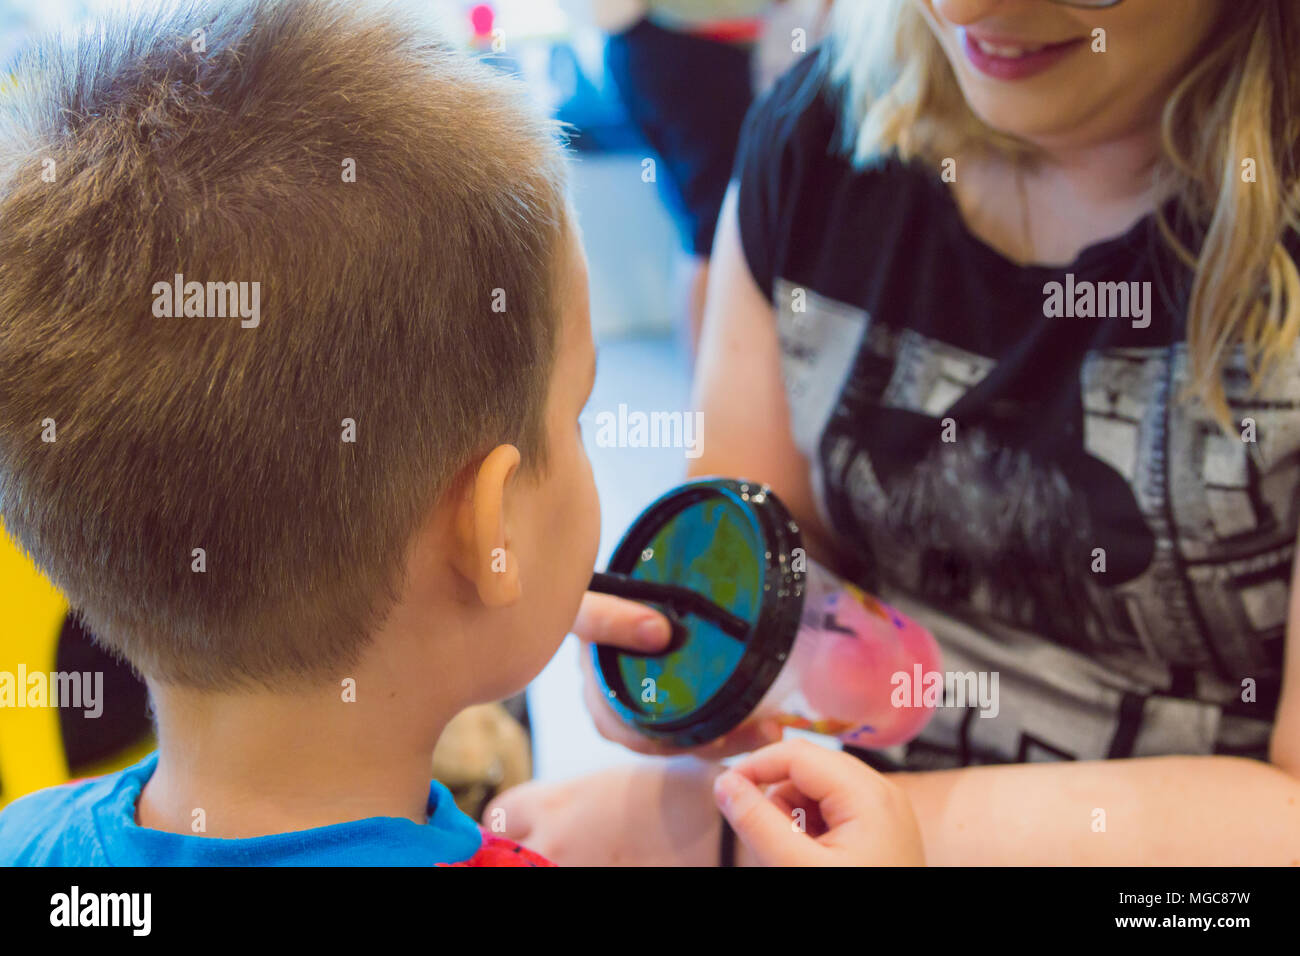 Young boy drinks sweet shaved ice at ice cream parlor Stock Photo